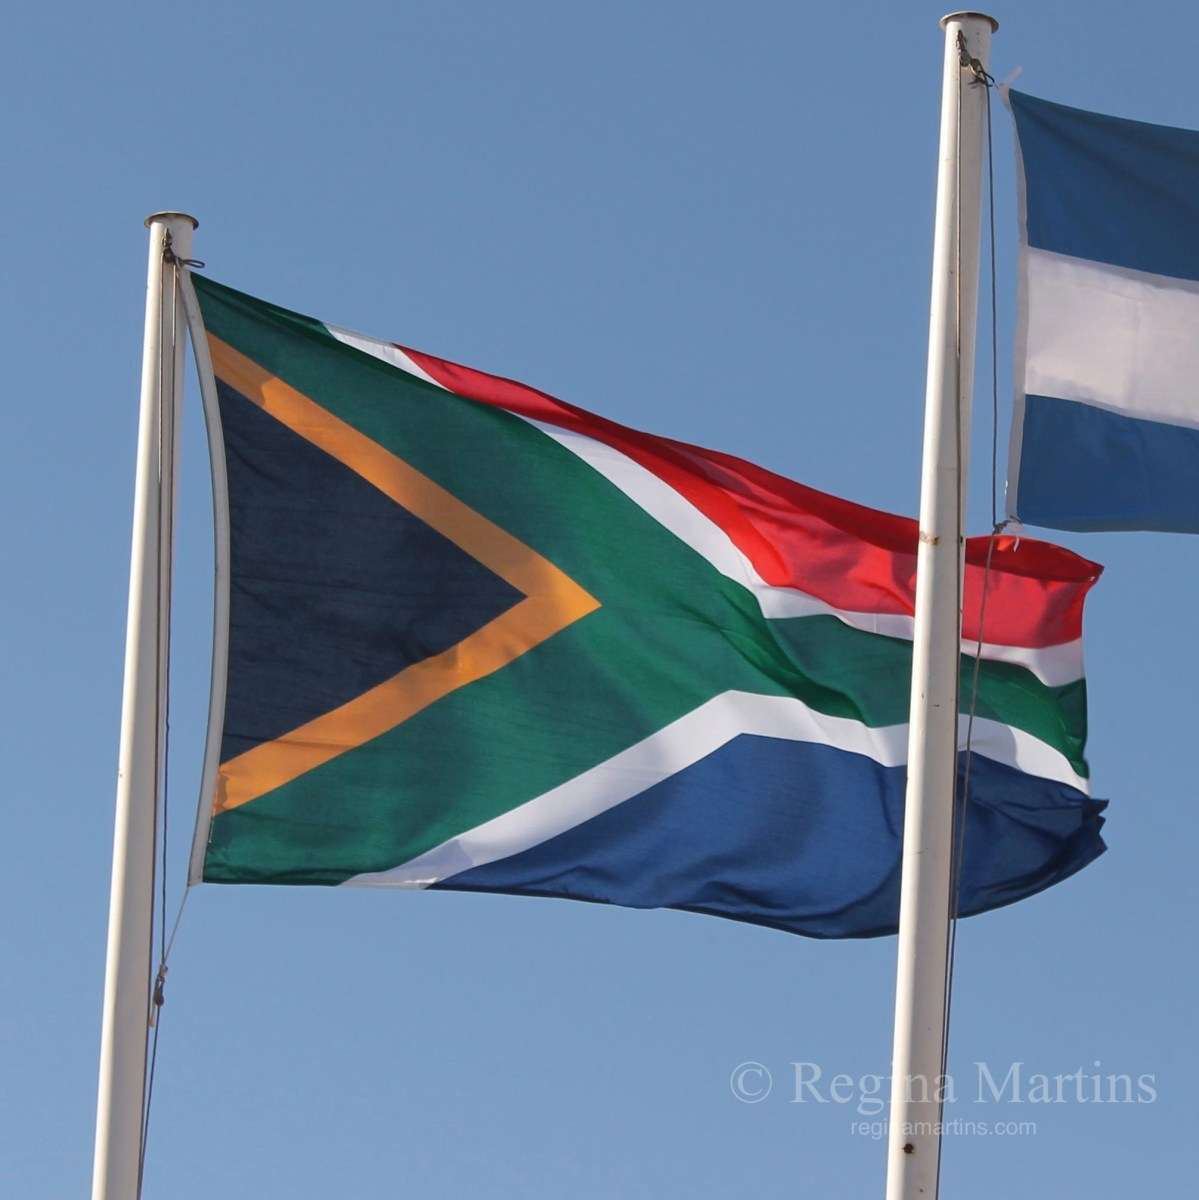 South Africa, My House, My Home - Proudly ZA!